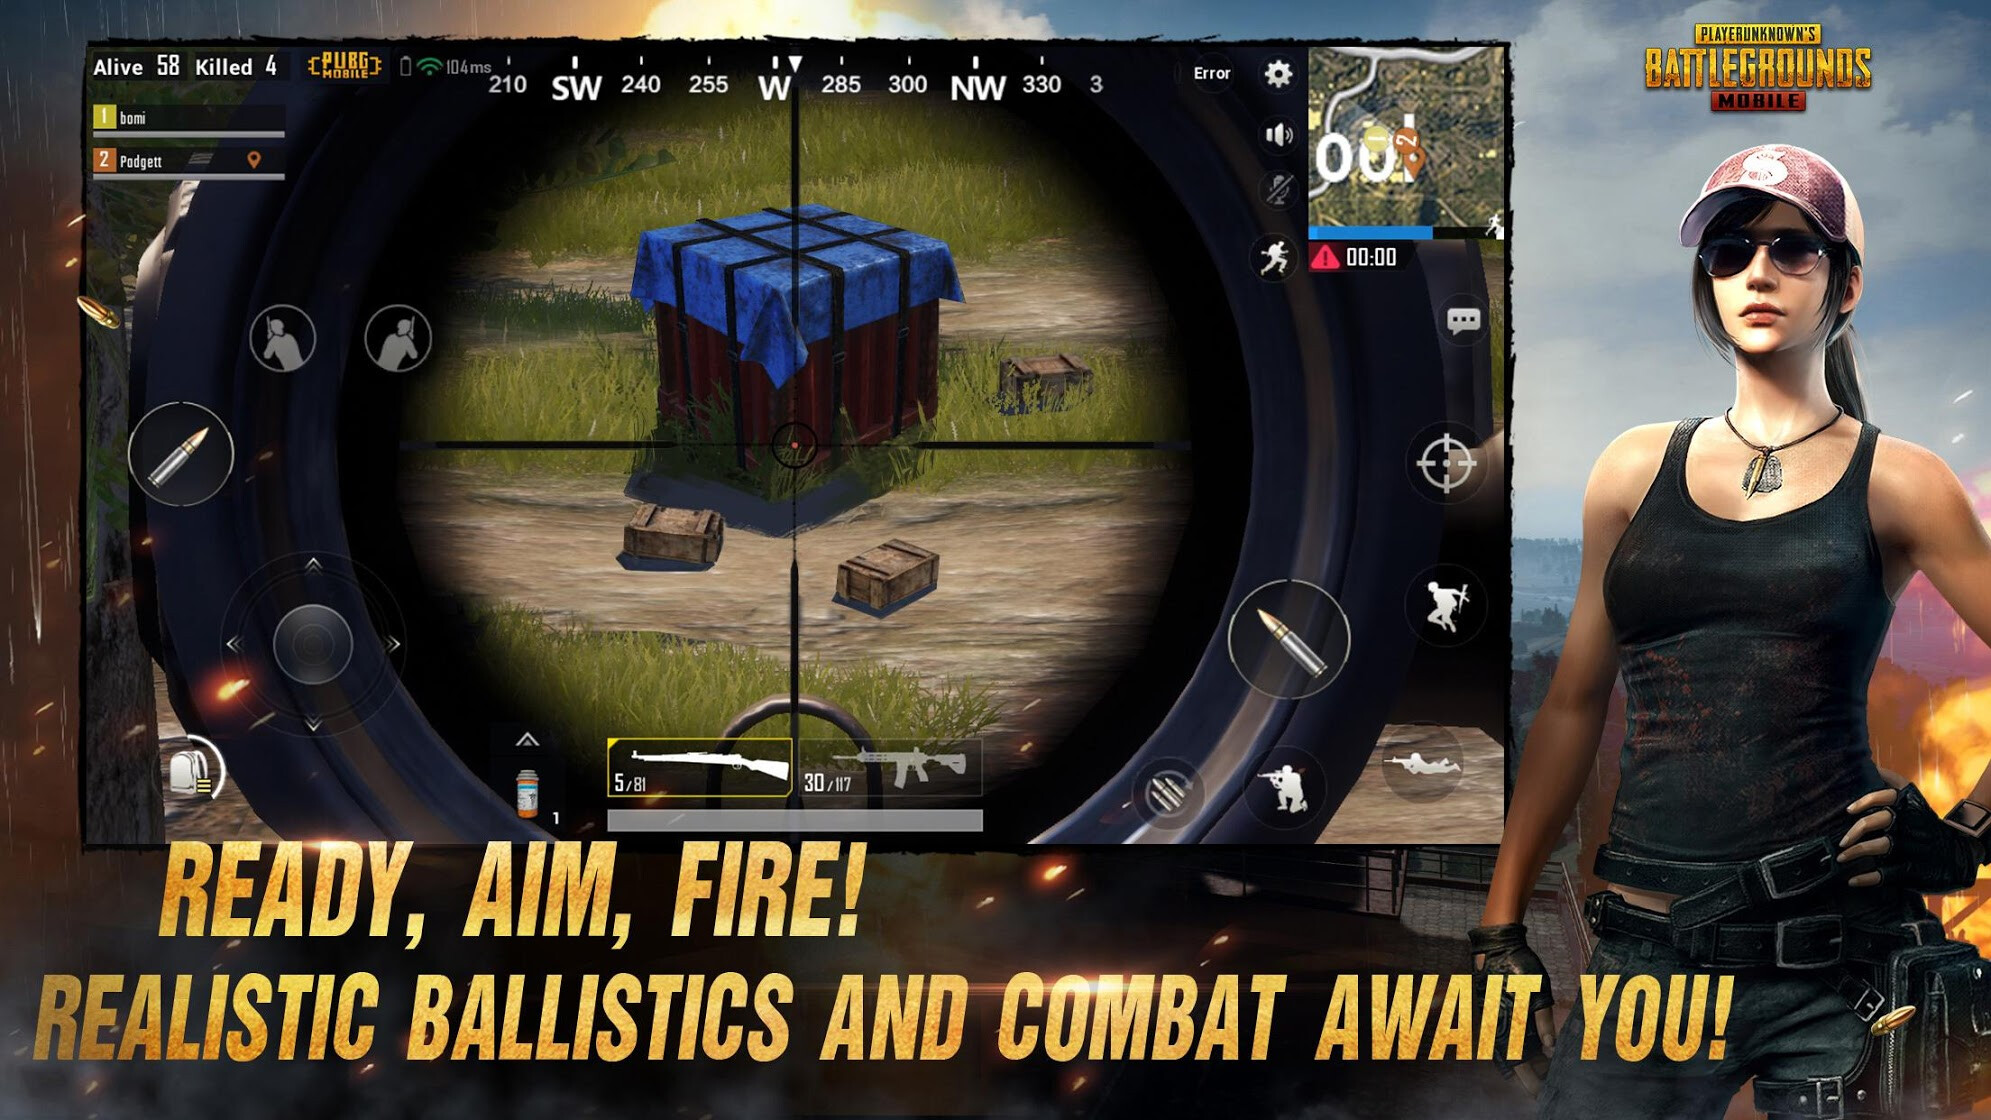 Pubg Spec Hd: PUBG Mobile Launched In The US On Android And IOS Devices